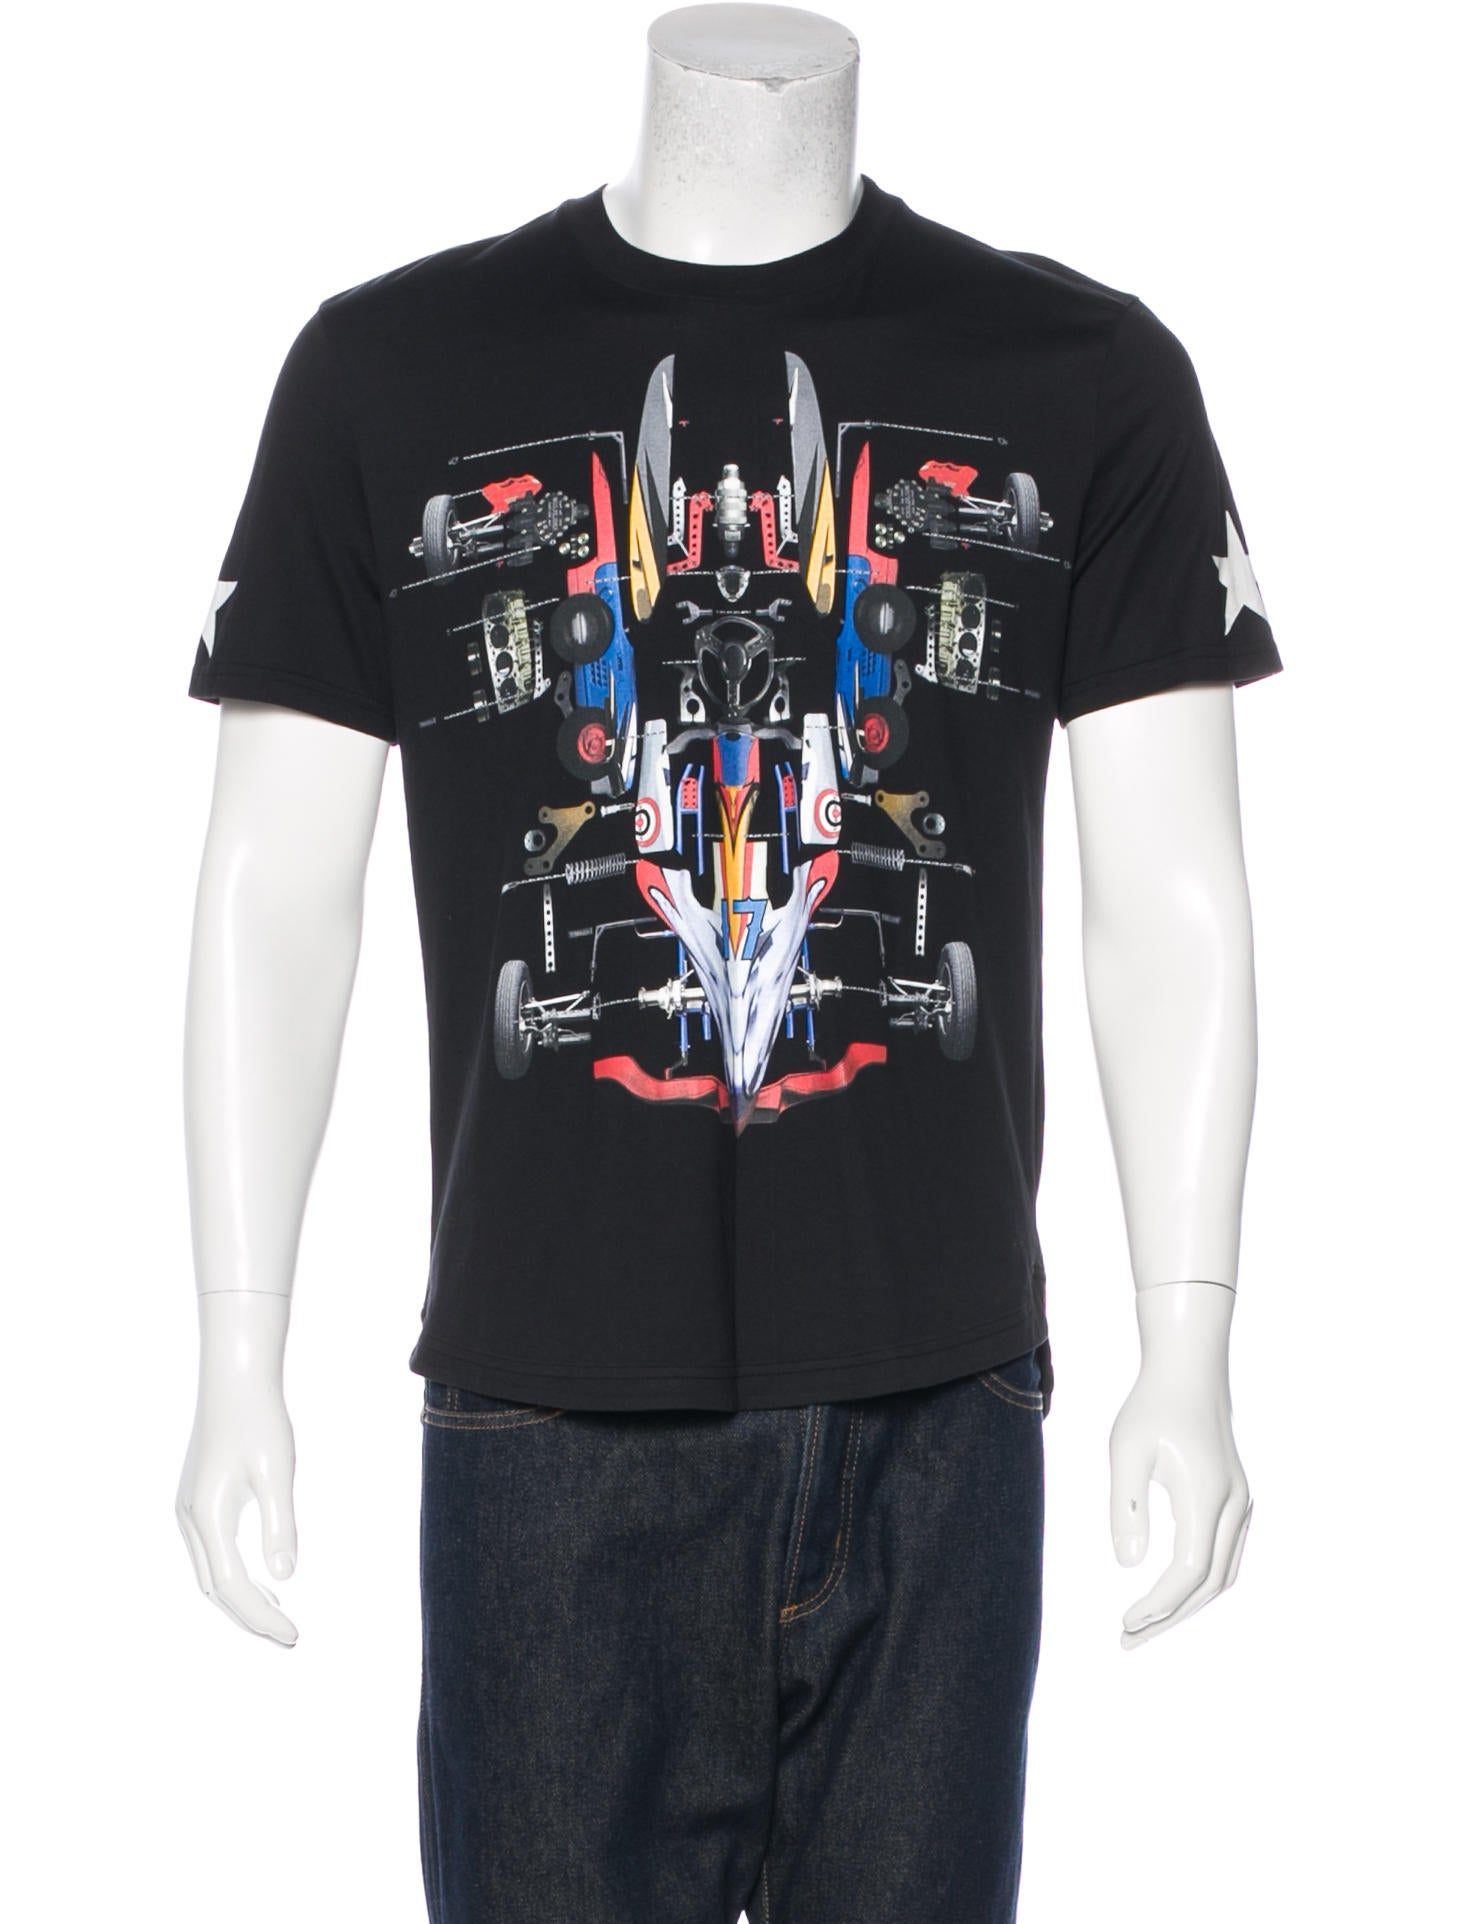 Givenchy racing car print t shirt clothing giv46713 Givenchy t shirt price